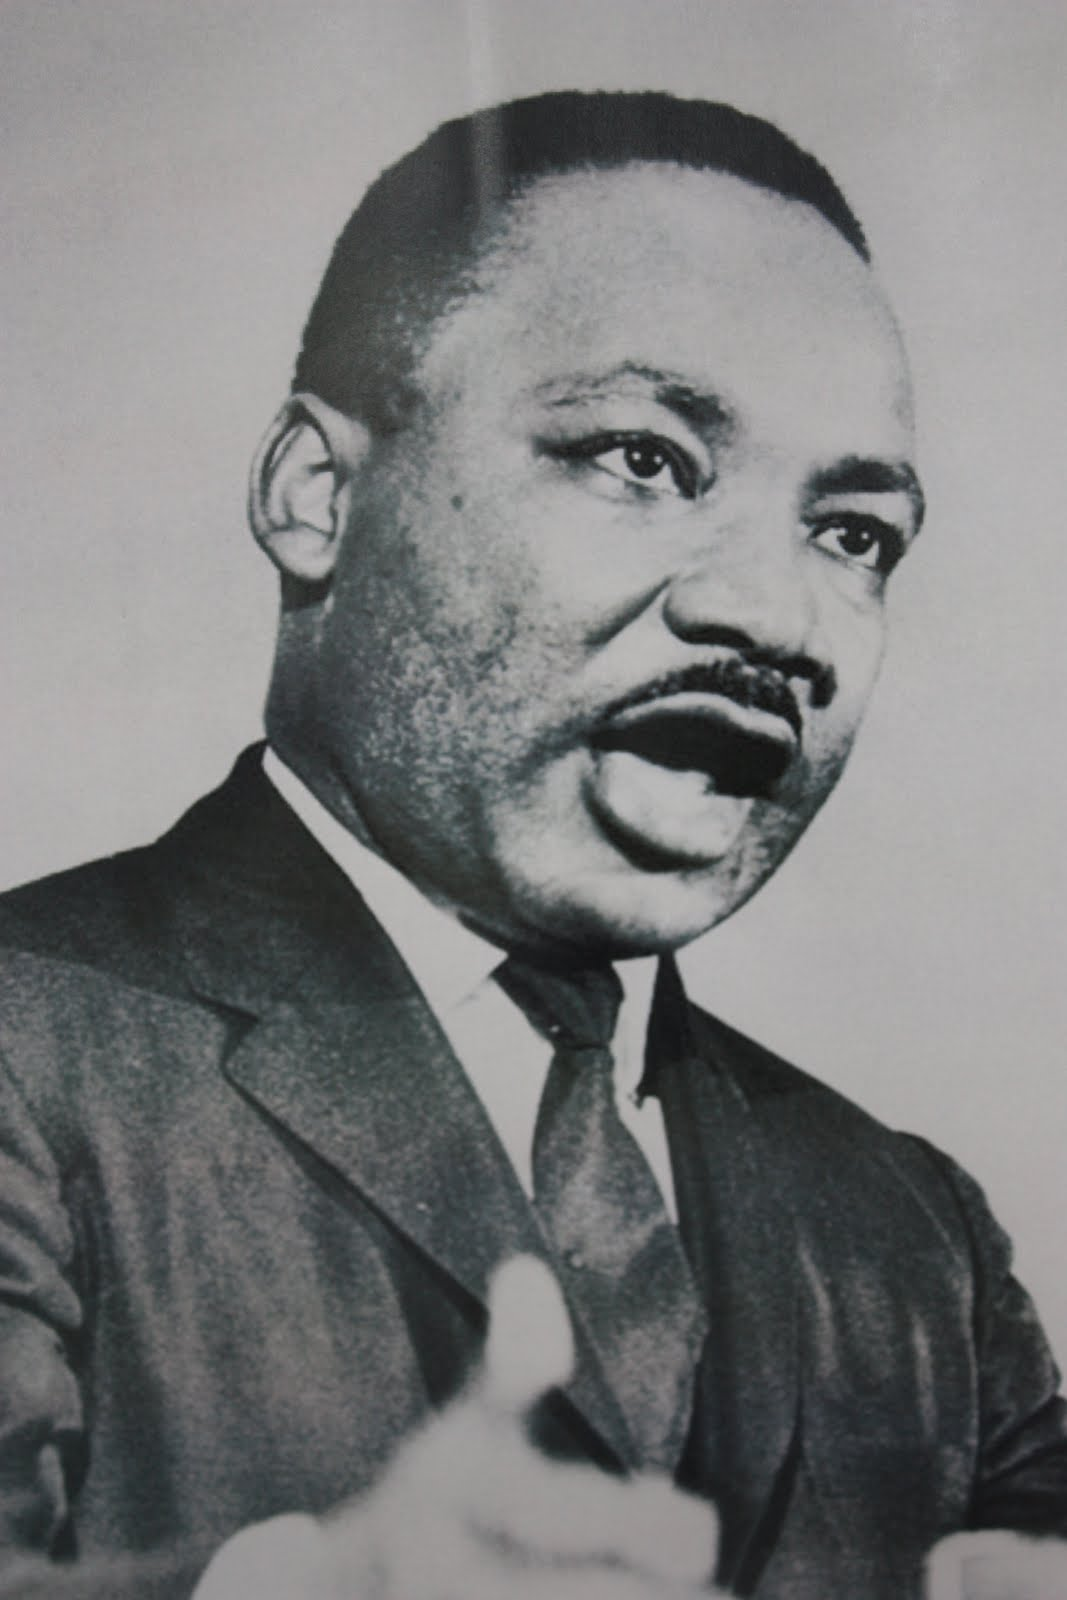 a better understanding of i have a dream by martin luther king jr The i have a dream speech delievered by dr martin luther king jr on that august day in 1963 finds itself on the shelf with washington's farewell address, jefferson's declaration and inaugural .